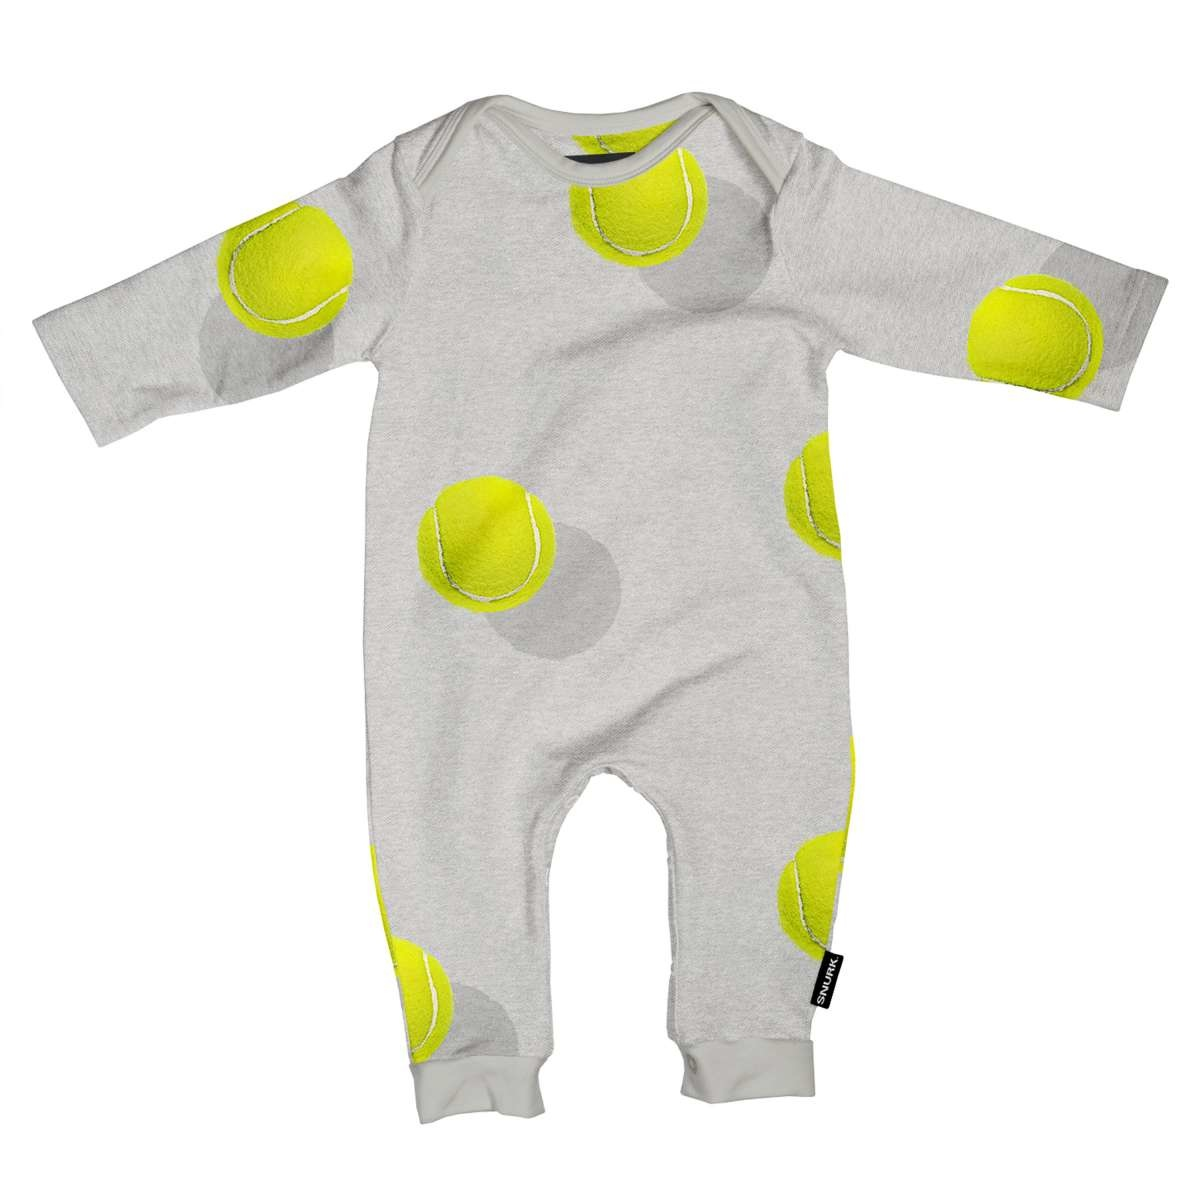 Jumpsuit - Tennis - Sz 4/6 mo.-1